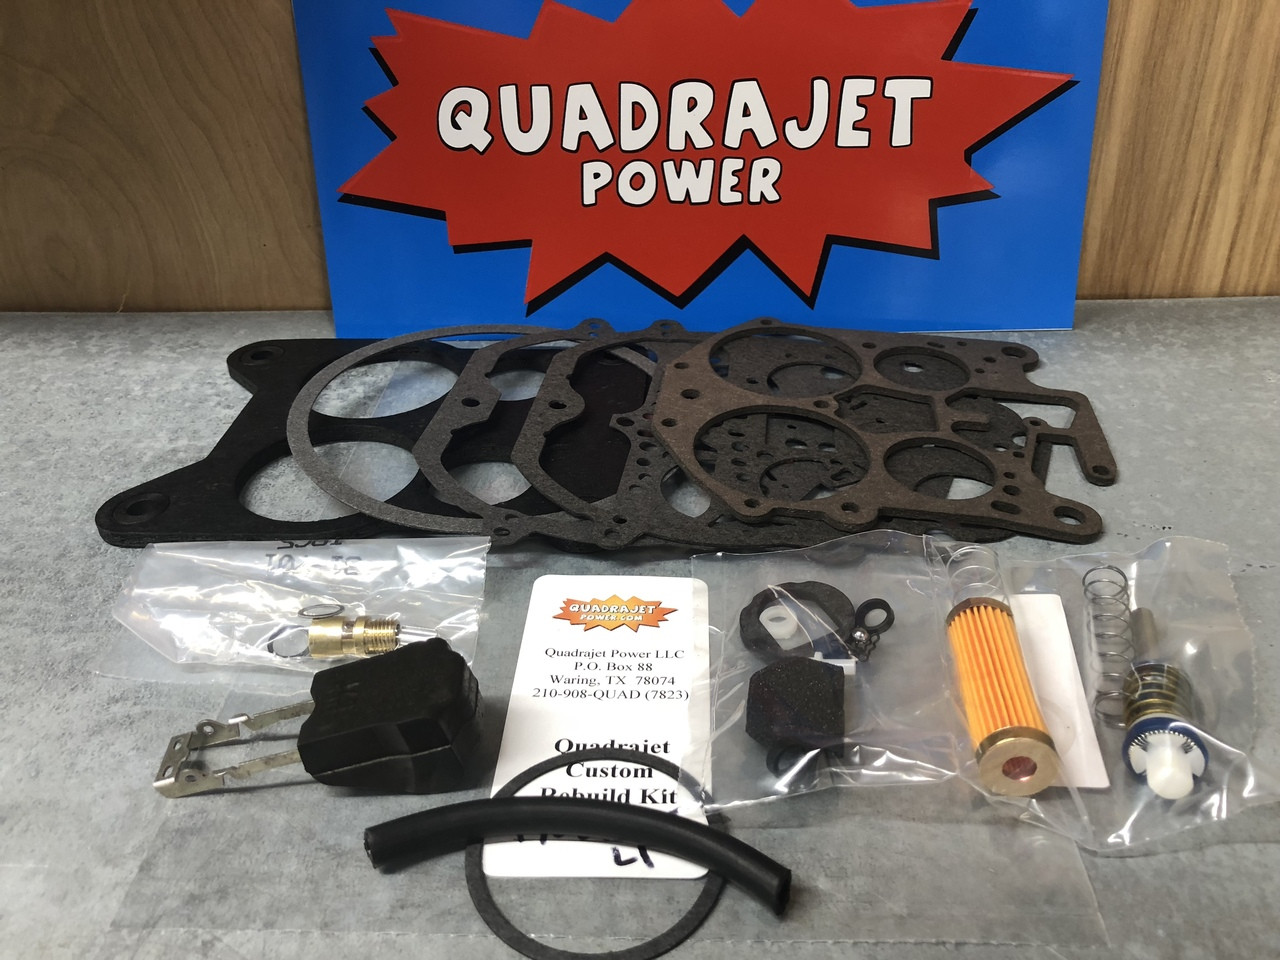 Quadrajet custom rebuild kit